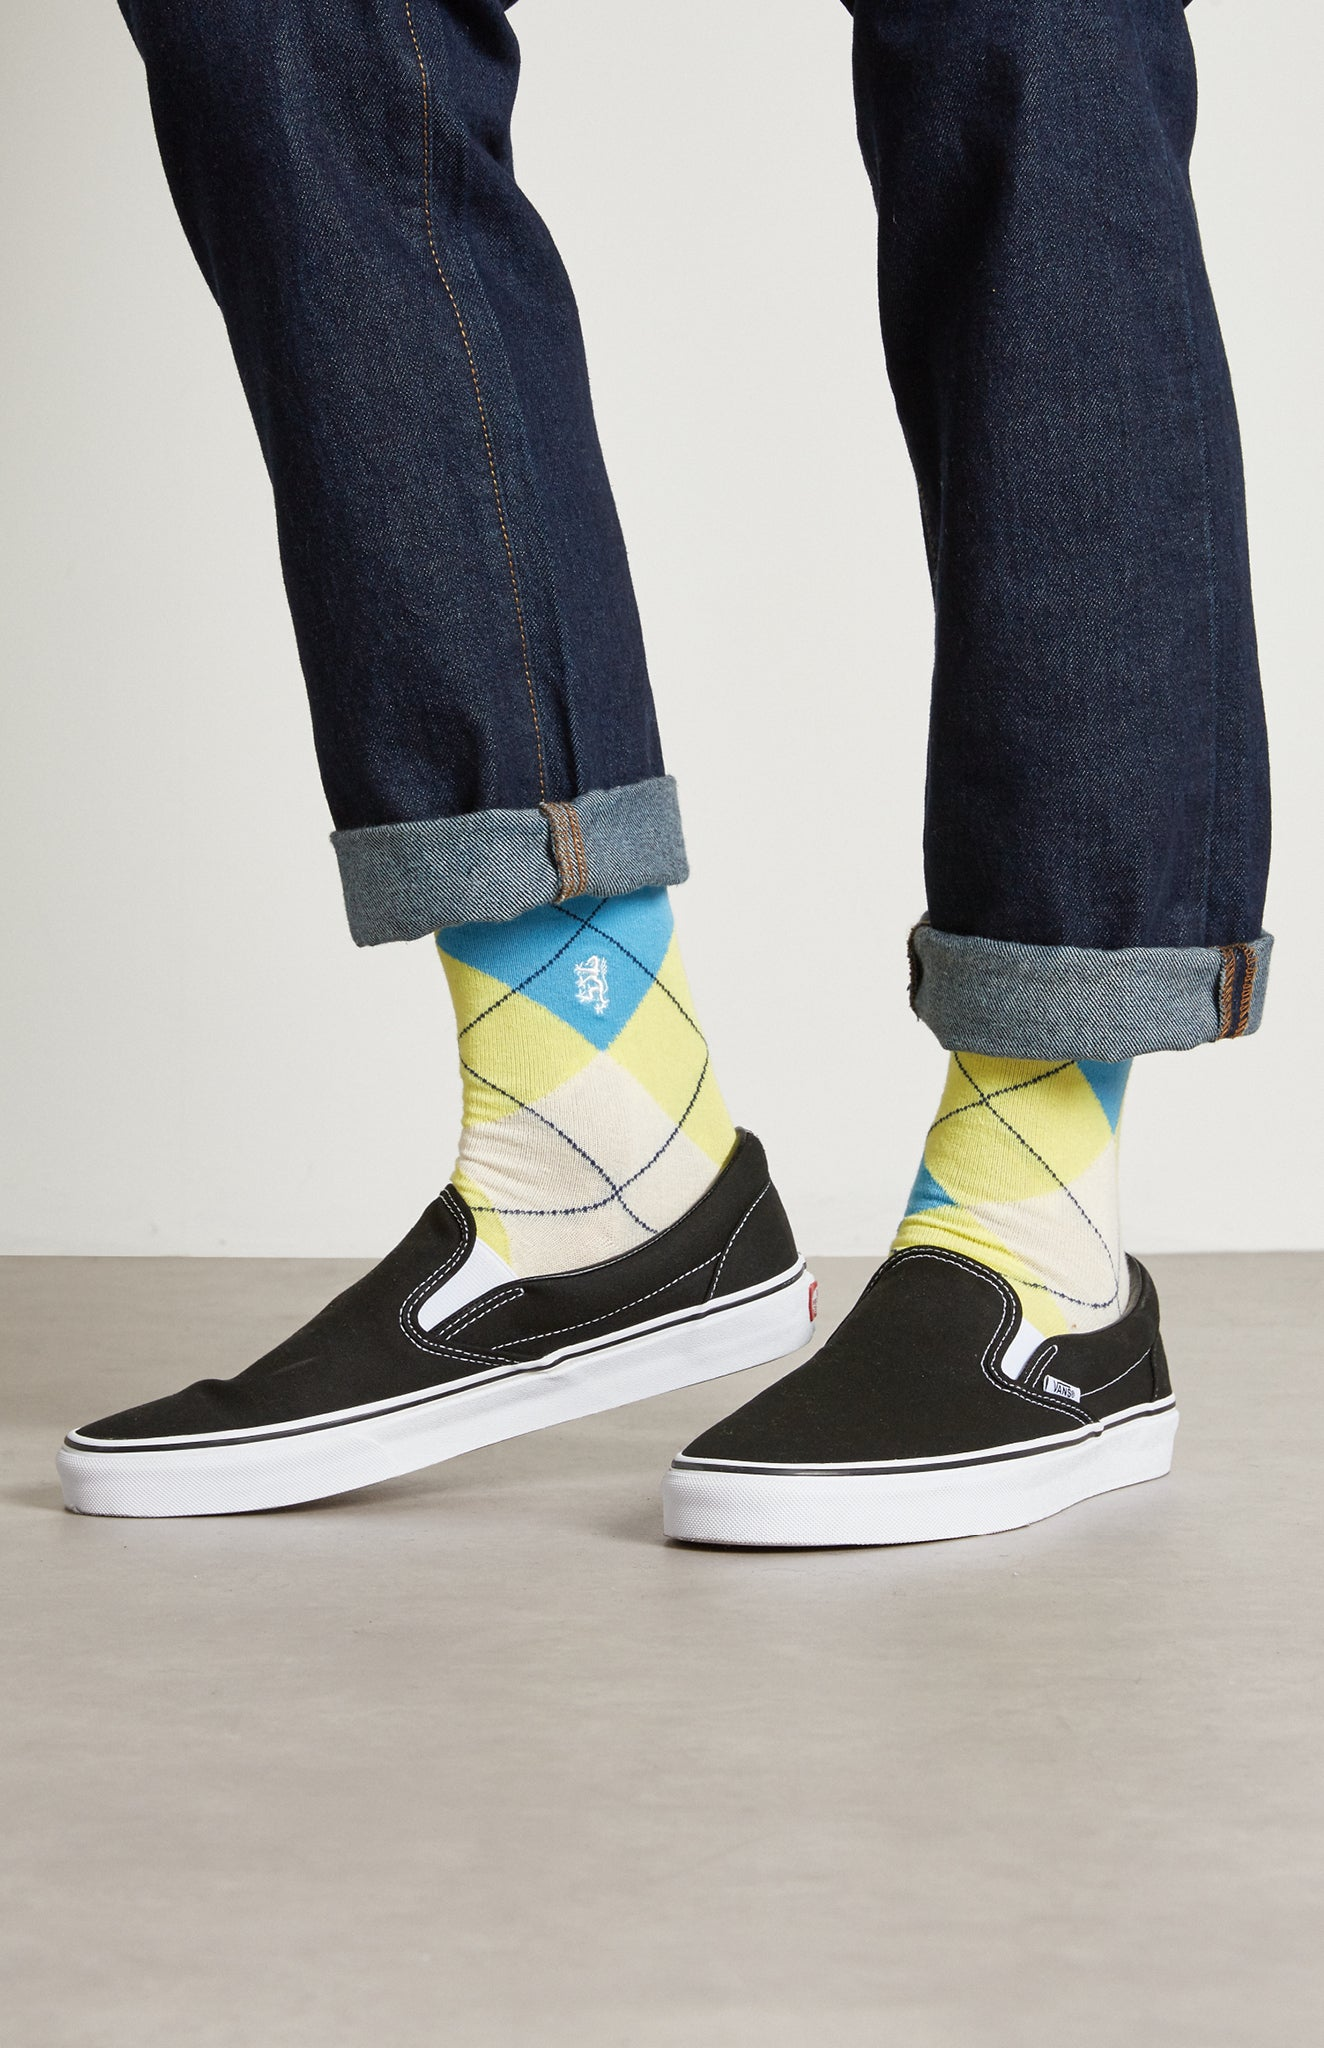 Pringe reissued Men's Classic Argyle Socks In Multi Lime